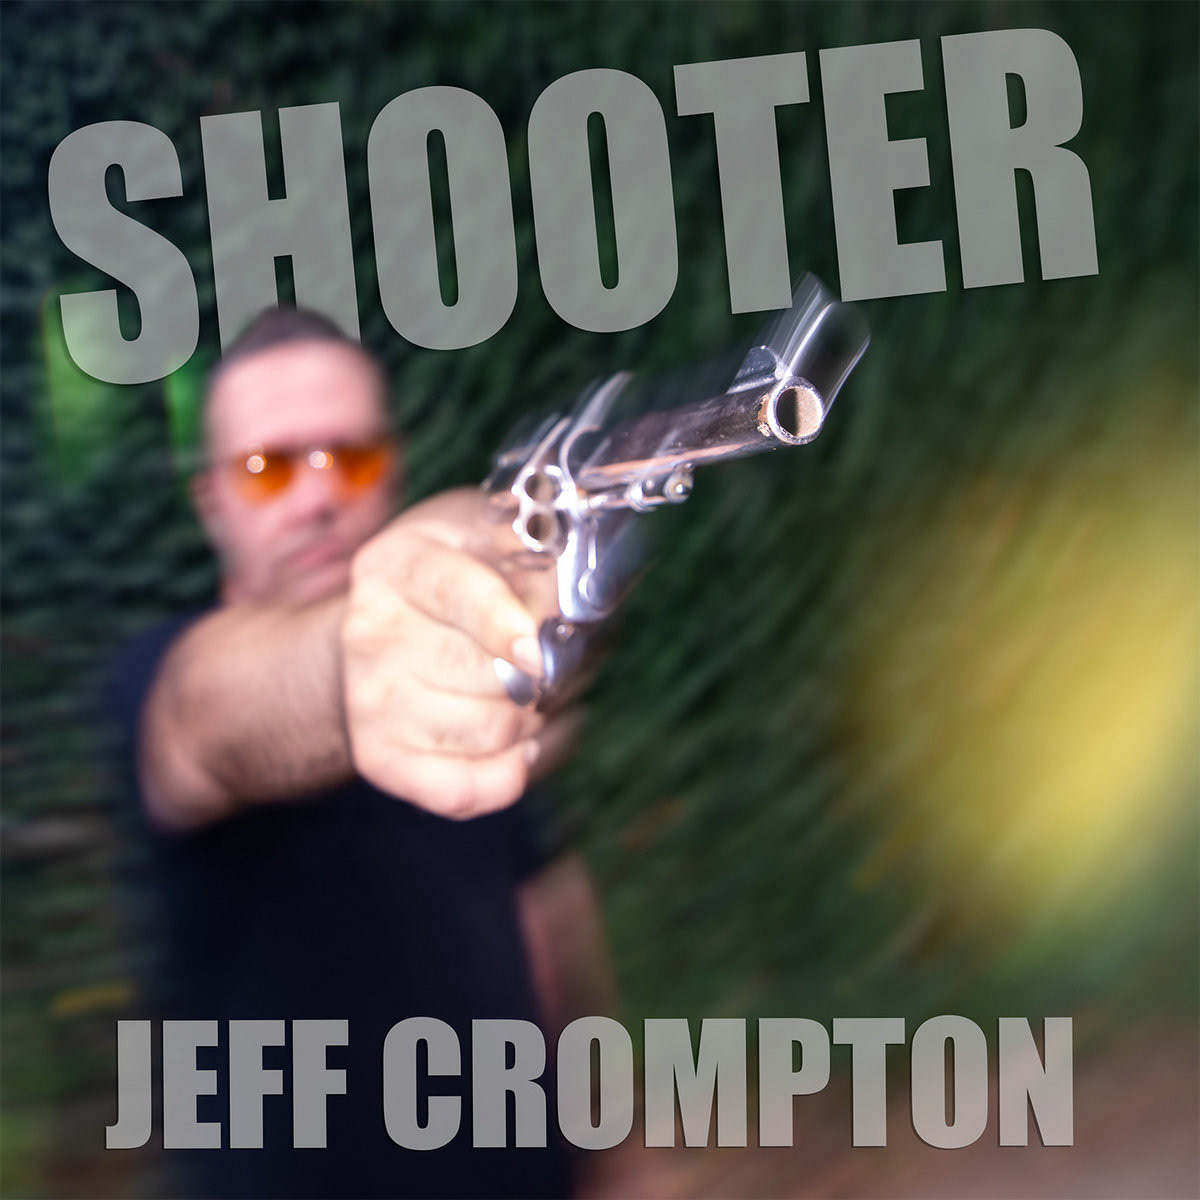 Album layout by Colin Bragg for Jeff Crompton